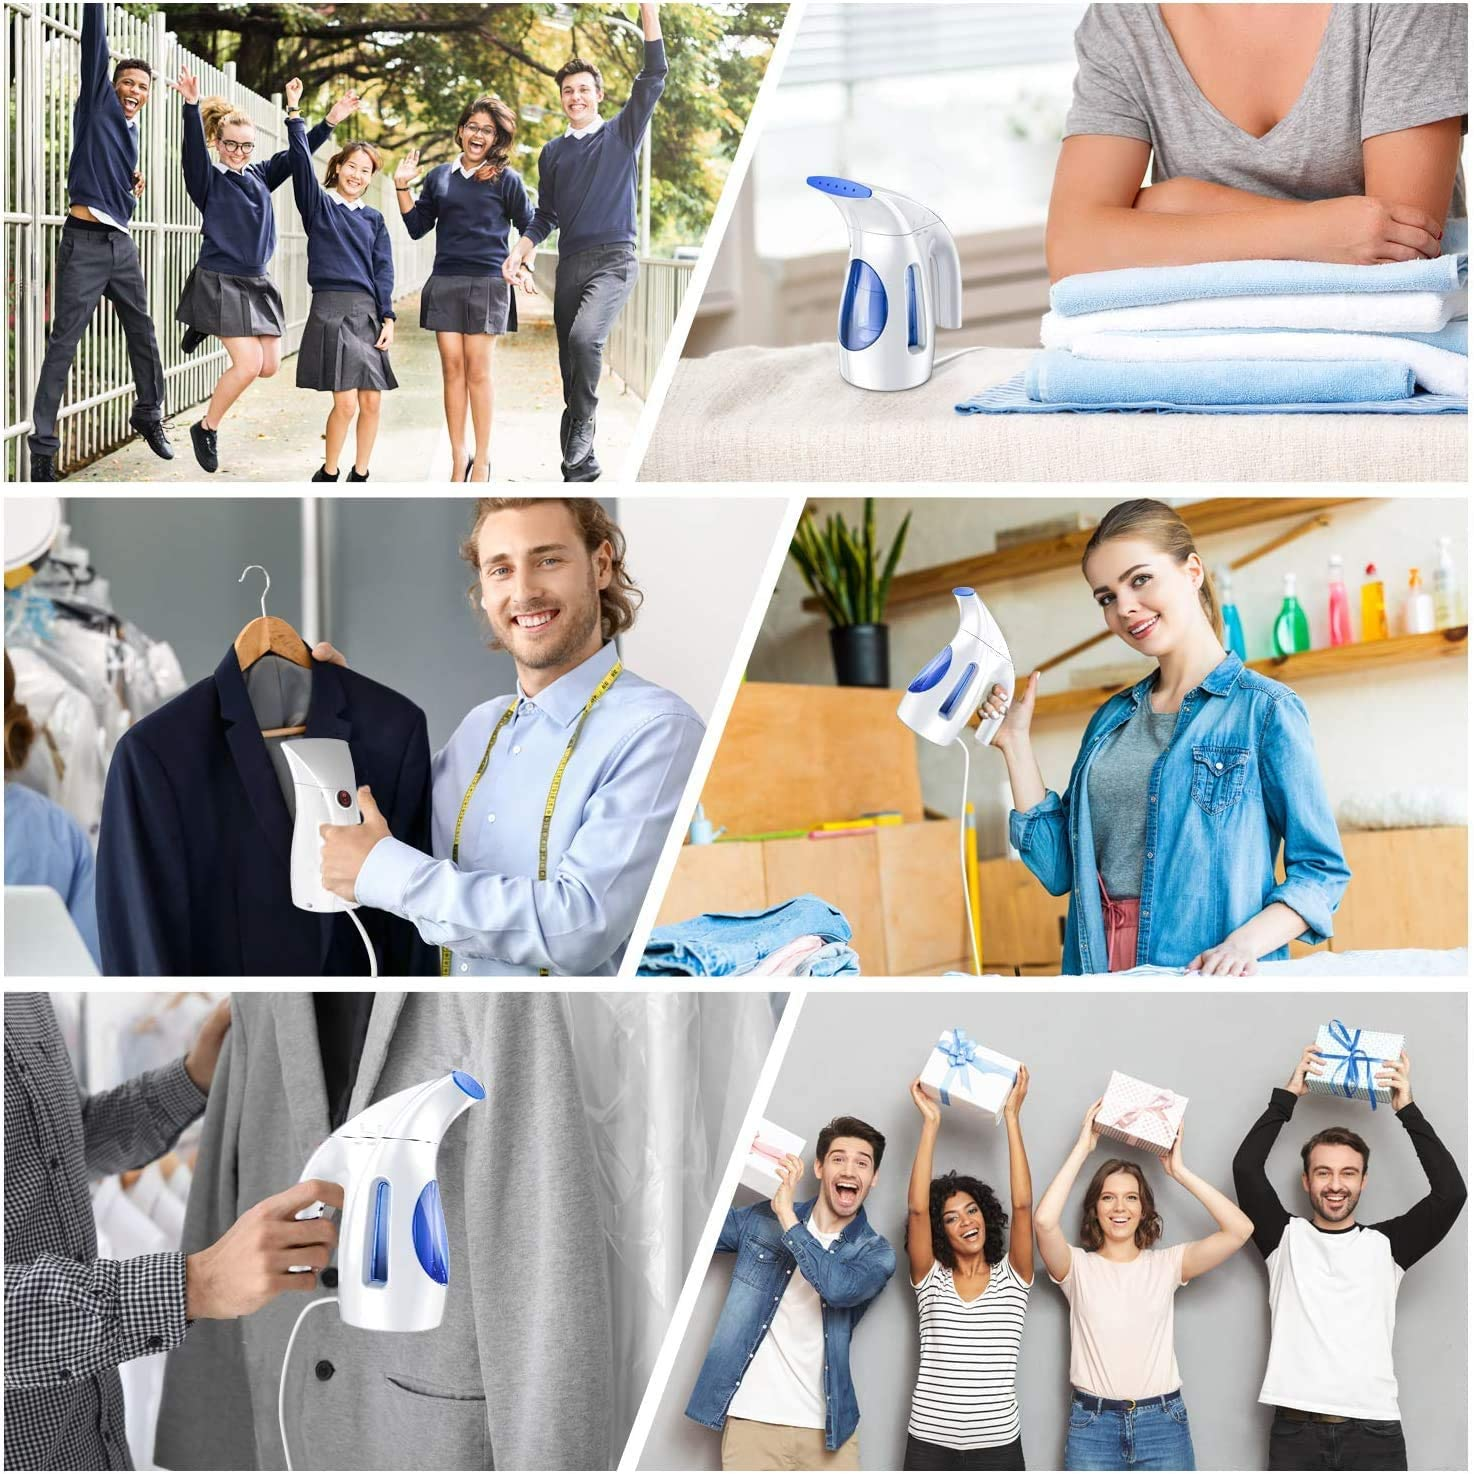 Hilife Steamer for Clothes Steamer, Handheld Garment Steamer Clothing, Mini Travel Steamer Fabric Steam Iron 240ml Big Capacity Upgraded Version